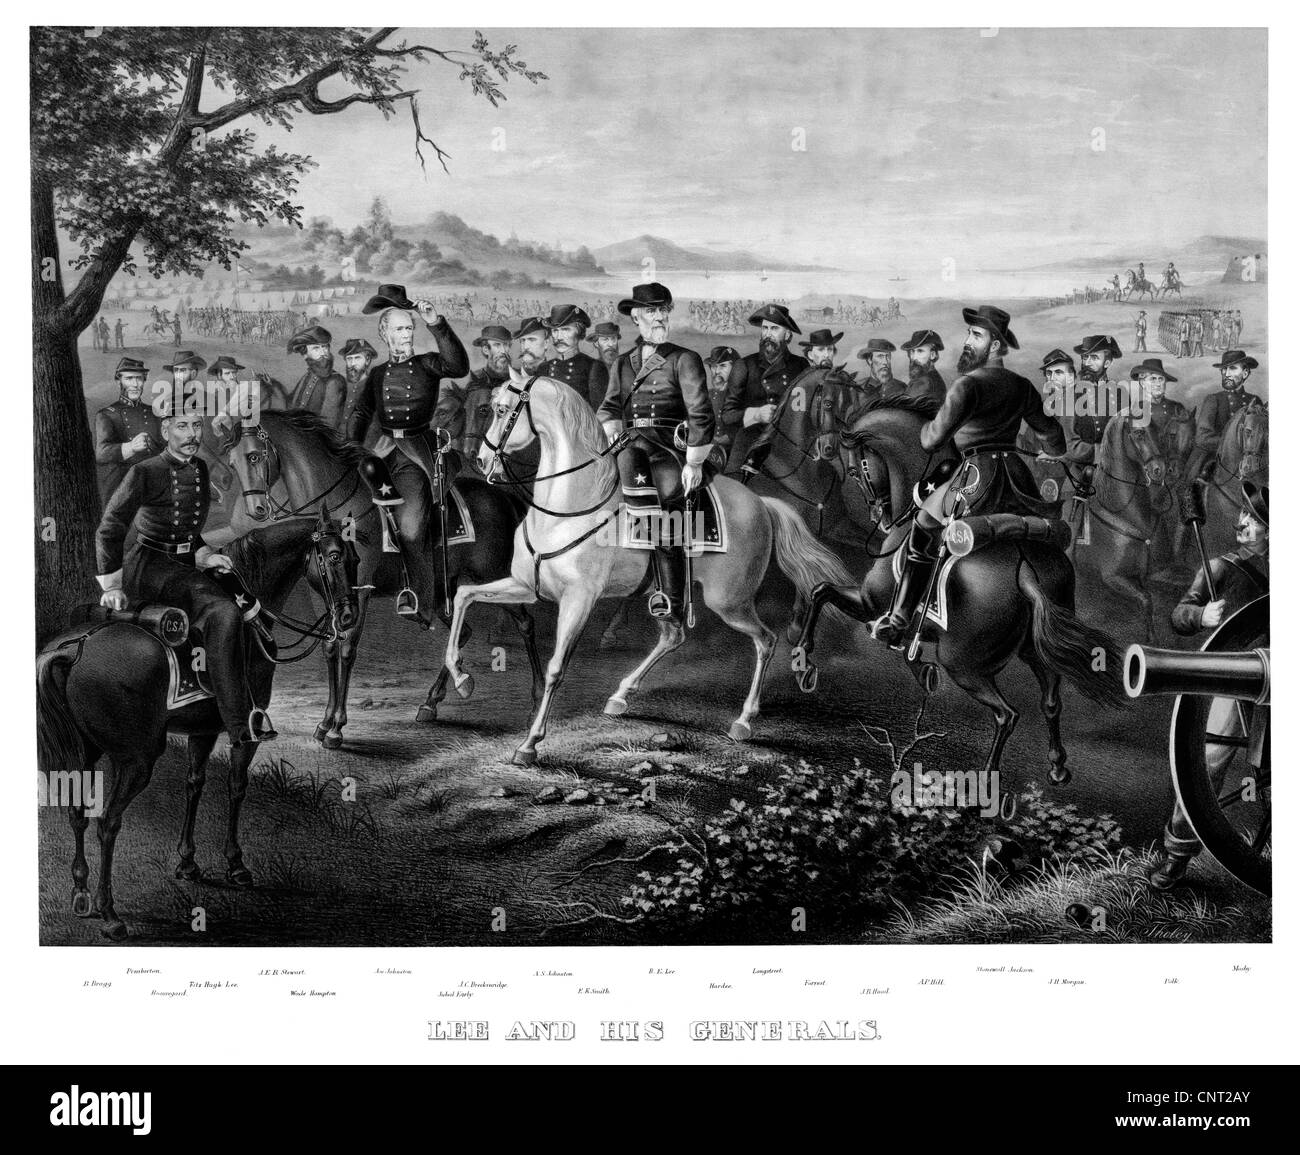 Digitally restored Civil War print showing General Lee and other prominent Confederate Generals of the Civil War - Stock Image